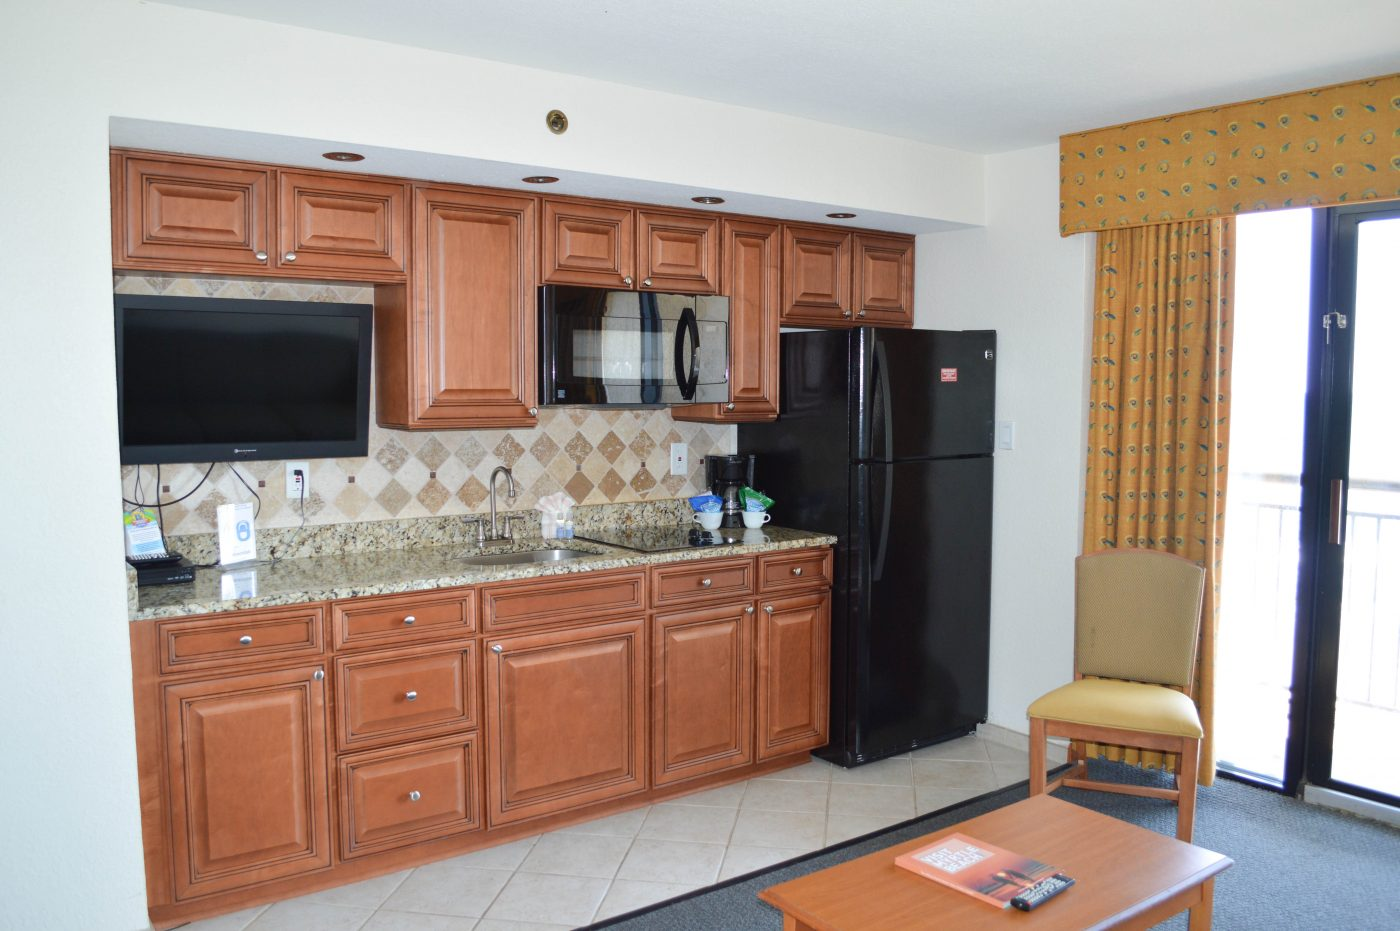 Efficiency Kitchen One Bedroom Efficiency Suite Hotels Aruba Bedroom Suites One